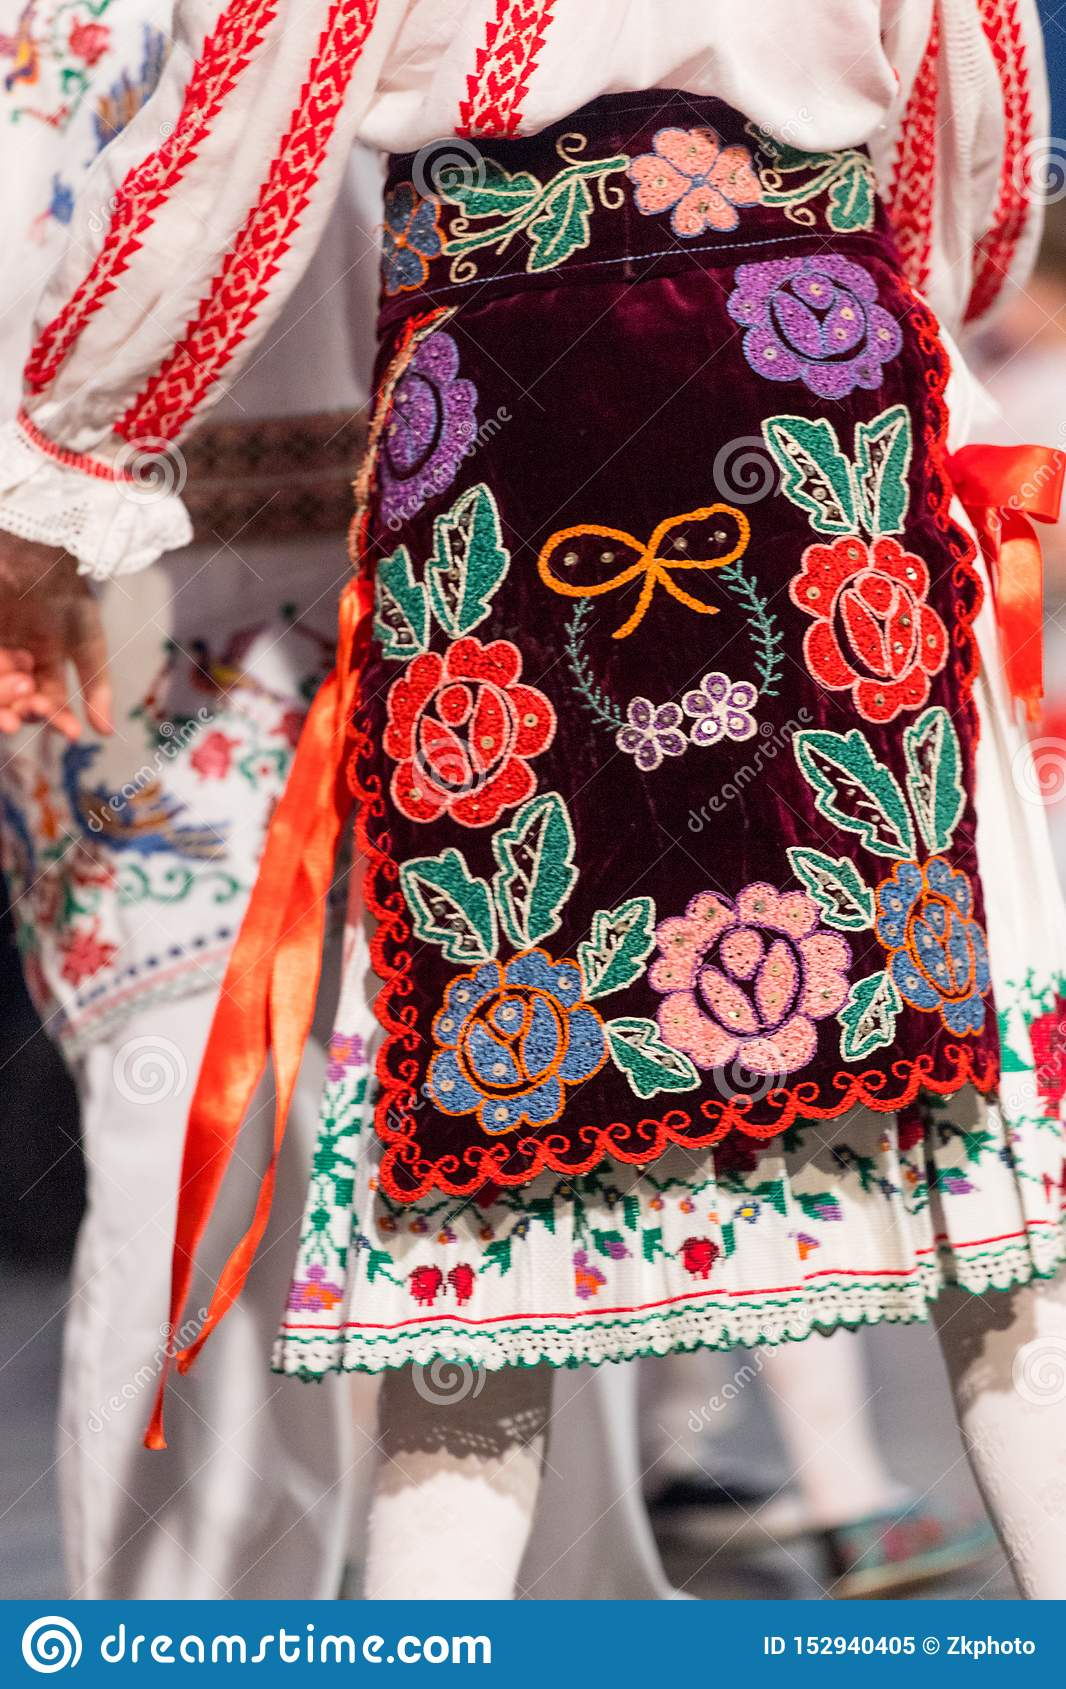 Detail of traditional folkloric costume of Romanian dancers perform a folk dance. Folklore of Romania